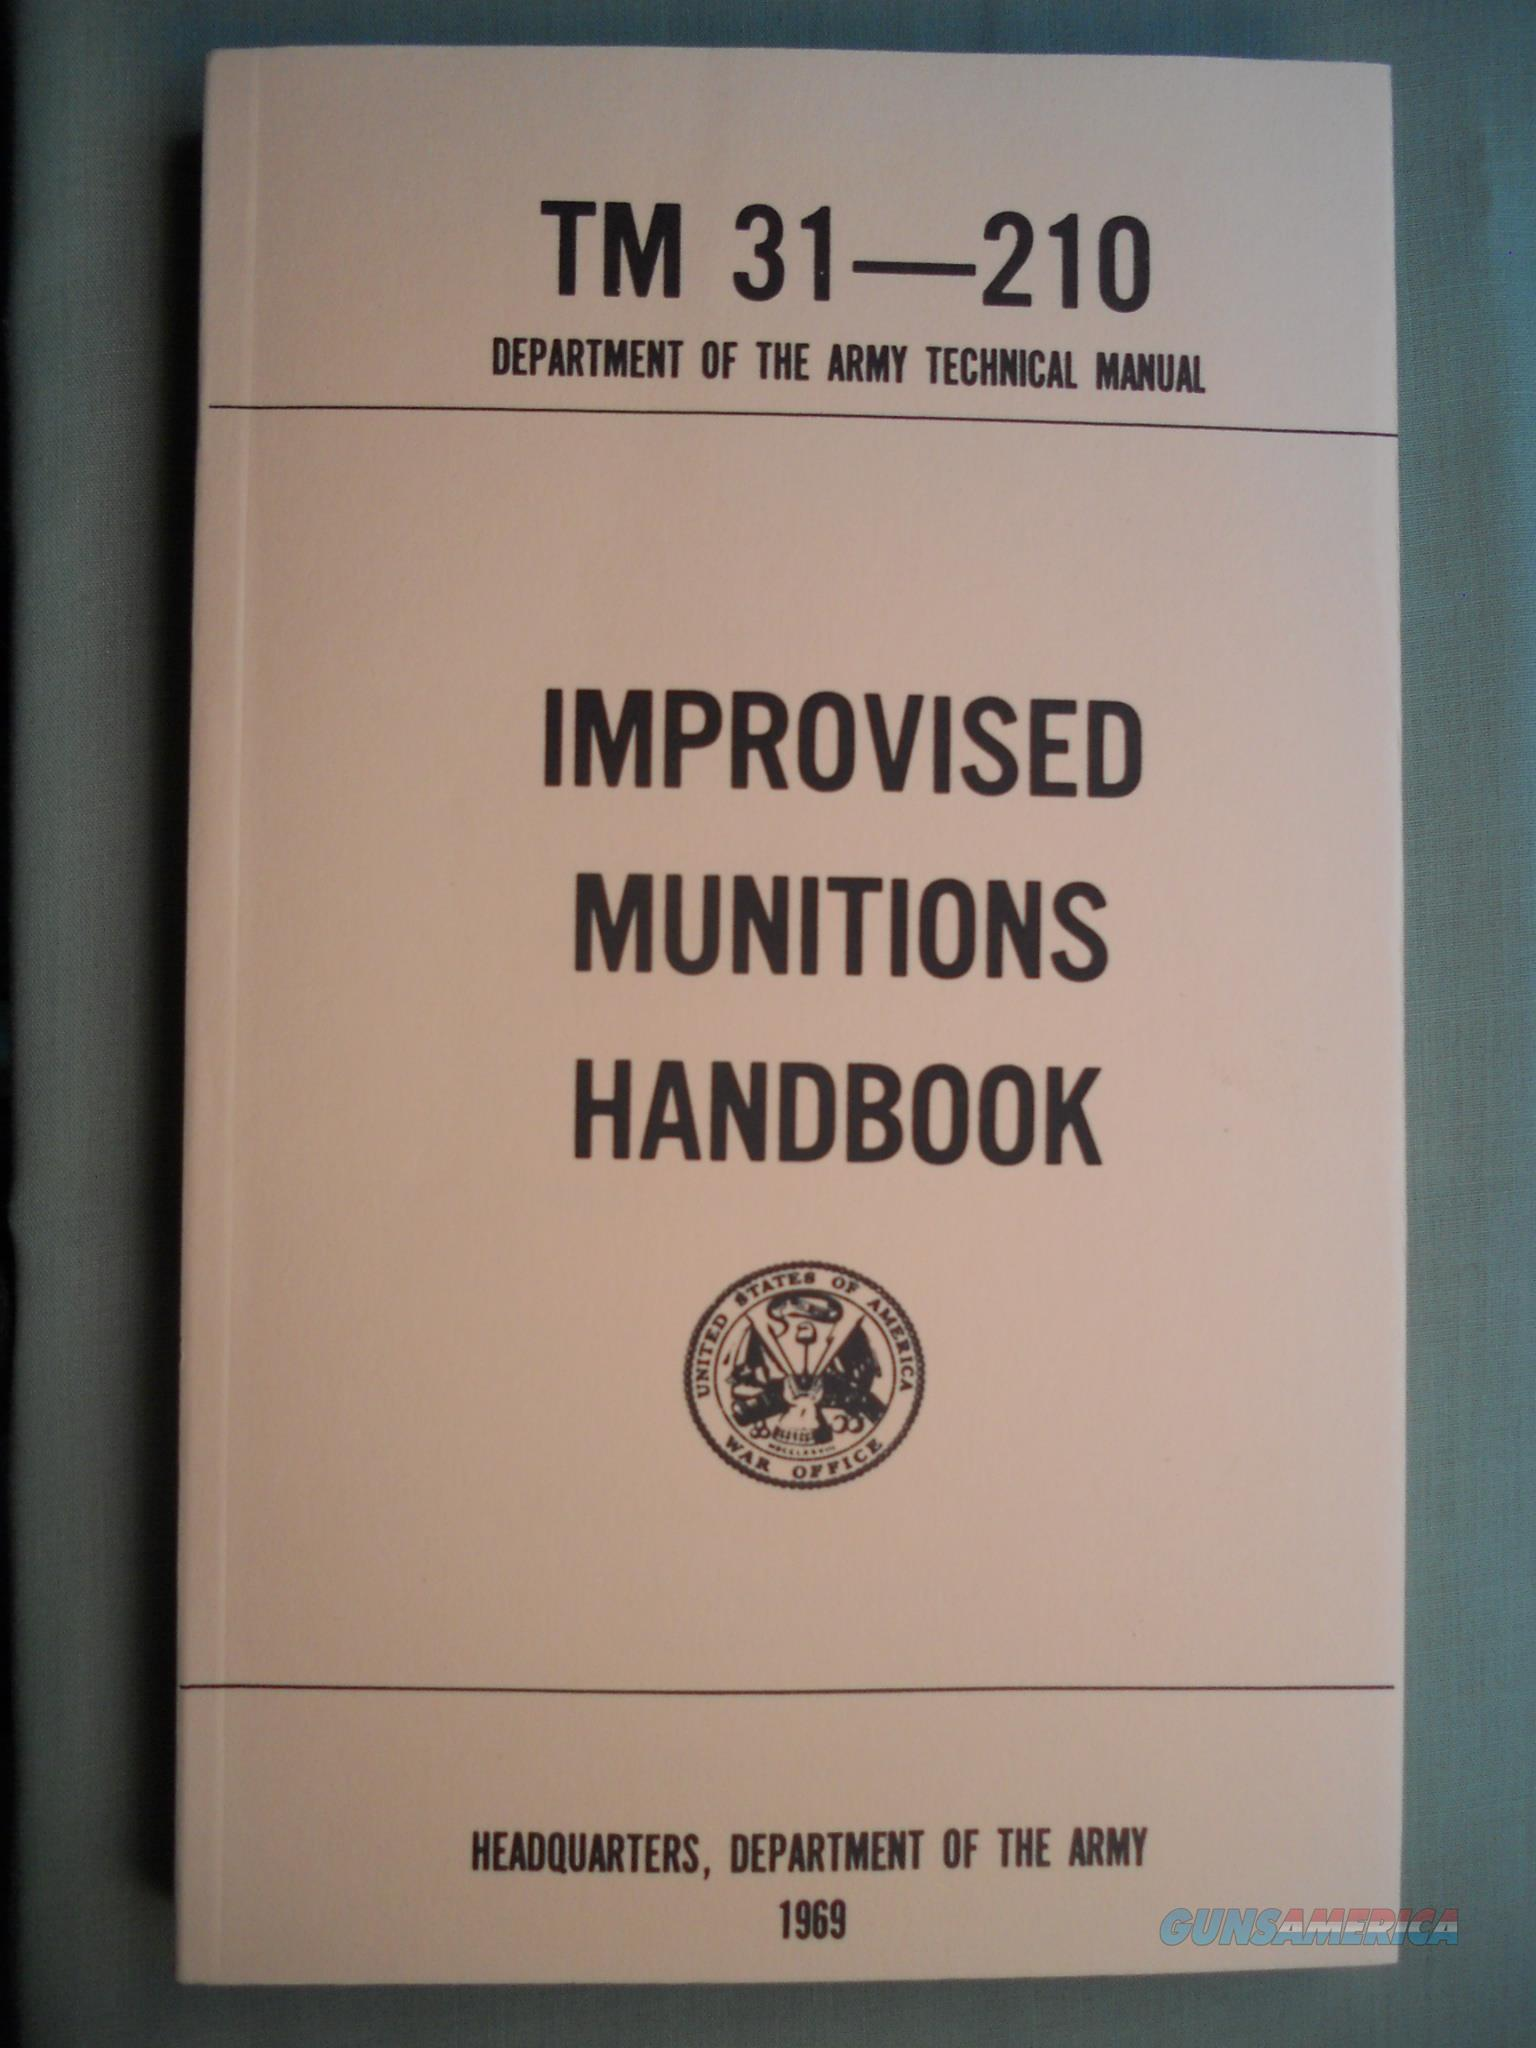 """United States Army Technical Manual """"IMPROVISED MUNITIONS' TM 31-210 1969   Non-Guns > Manuals - Print"""